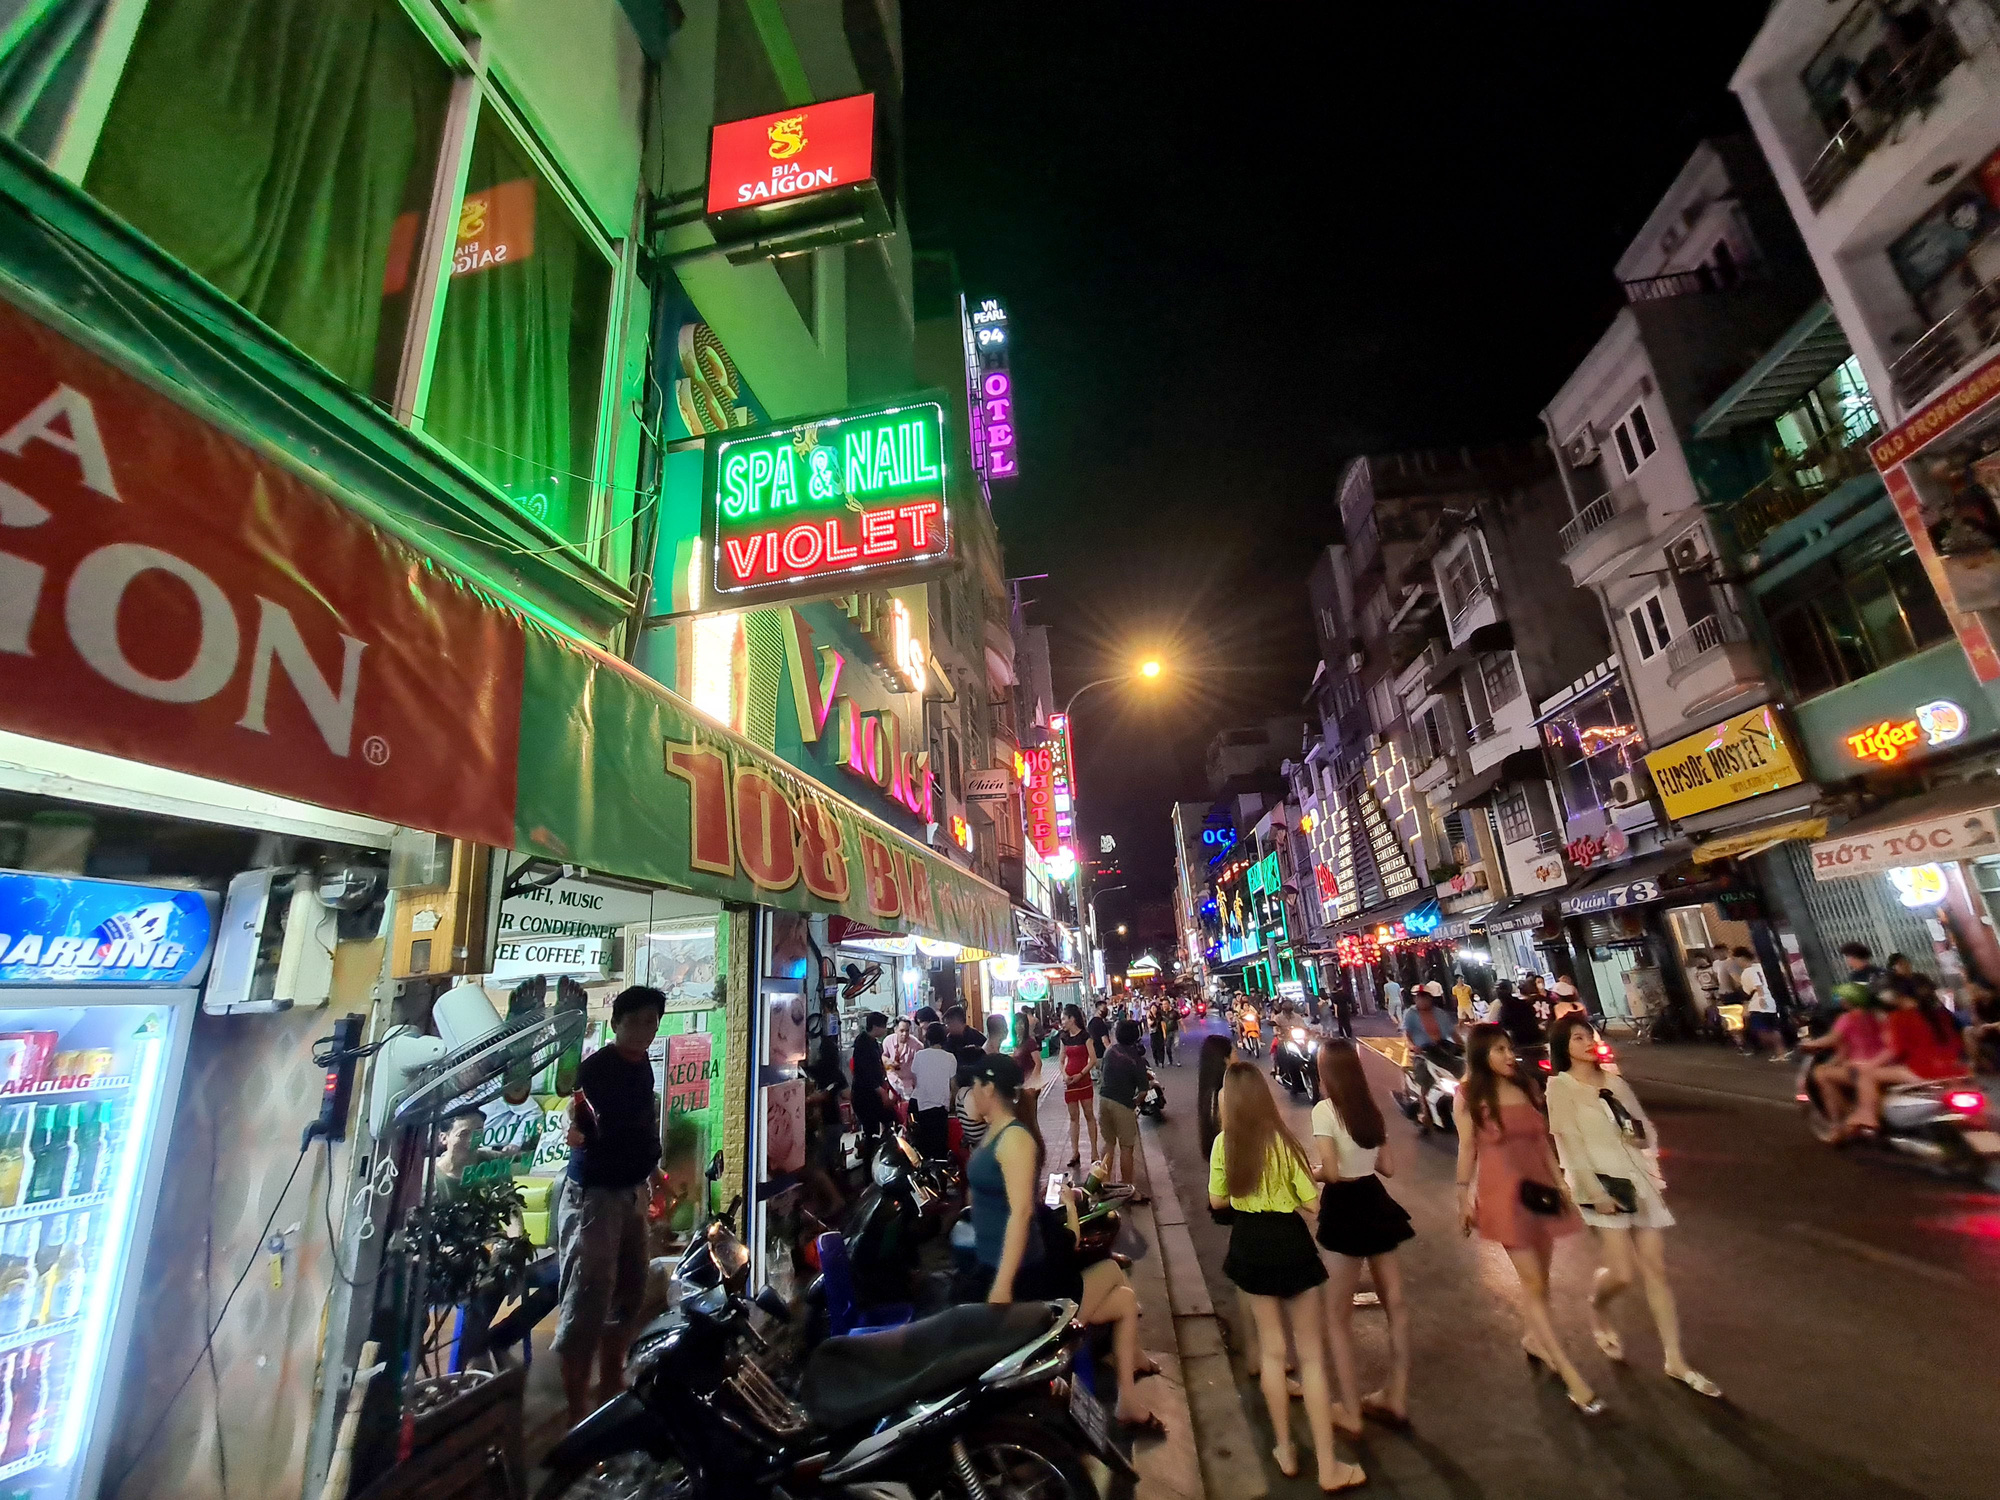 People take a stroll along Bui Vien Street in District 1, Ho Chi Minh City on May 9, 2020. Photo: Ngoc Hien / Tuoi Tre